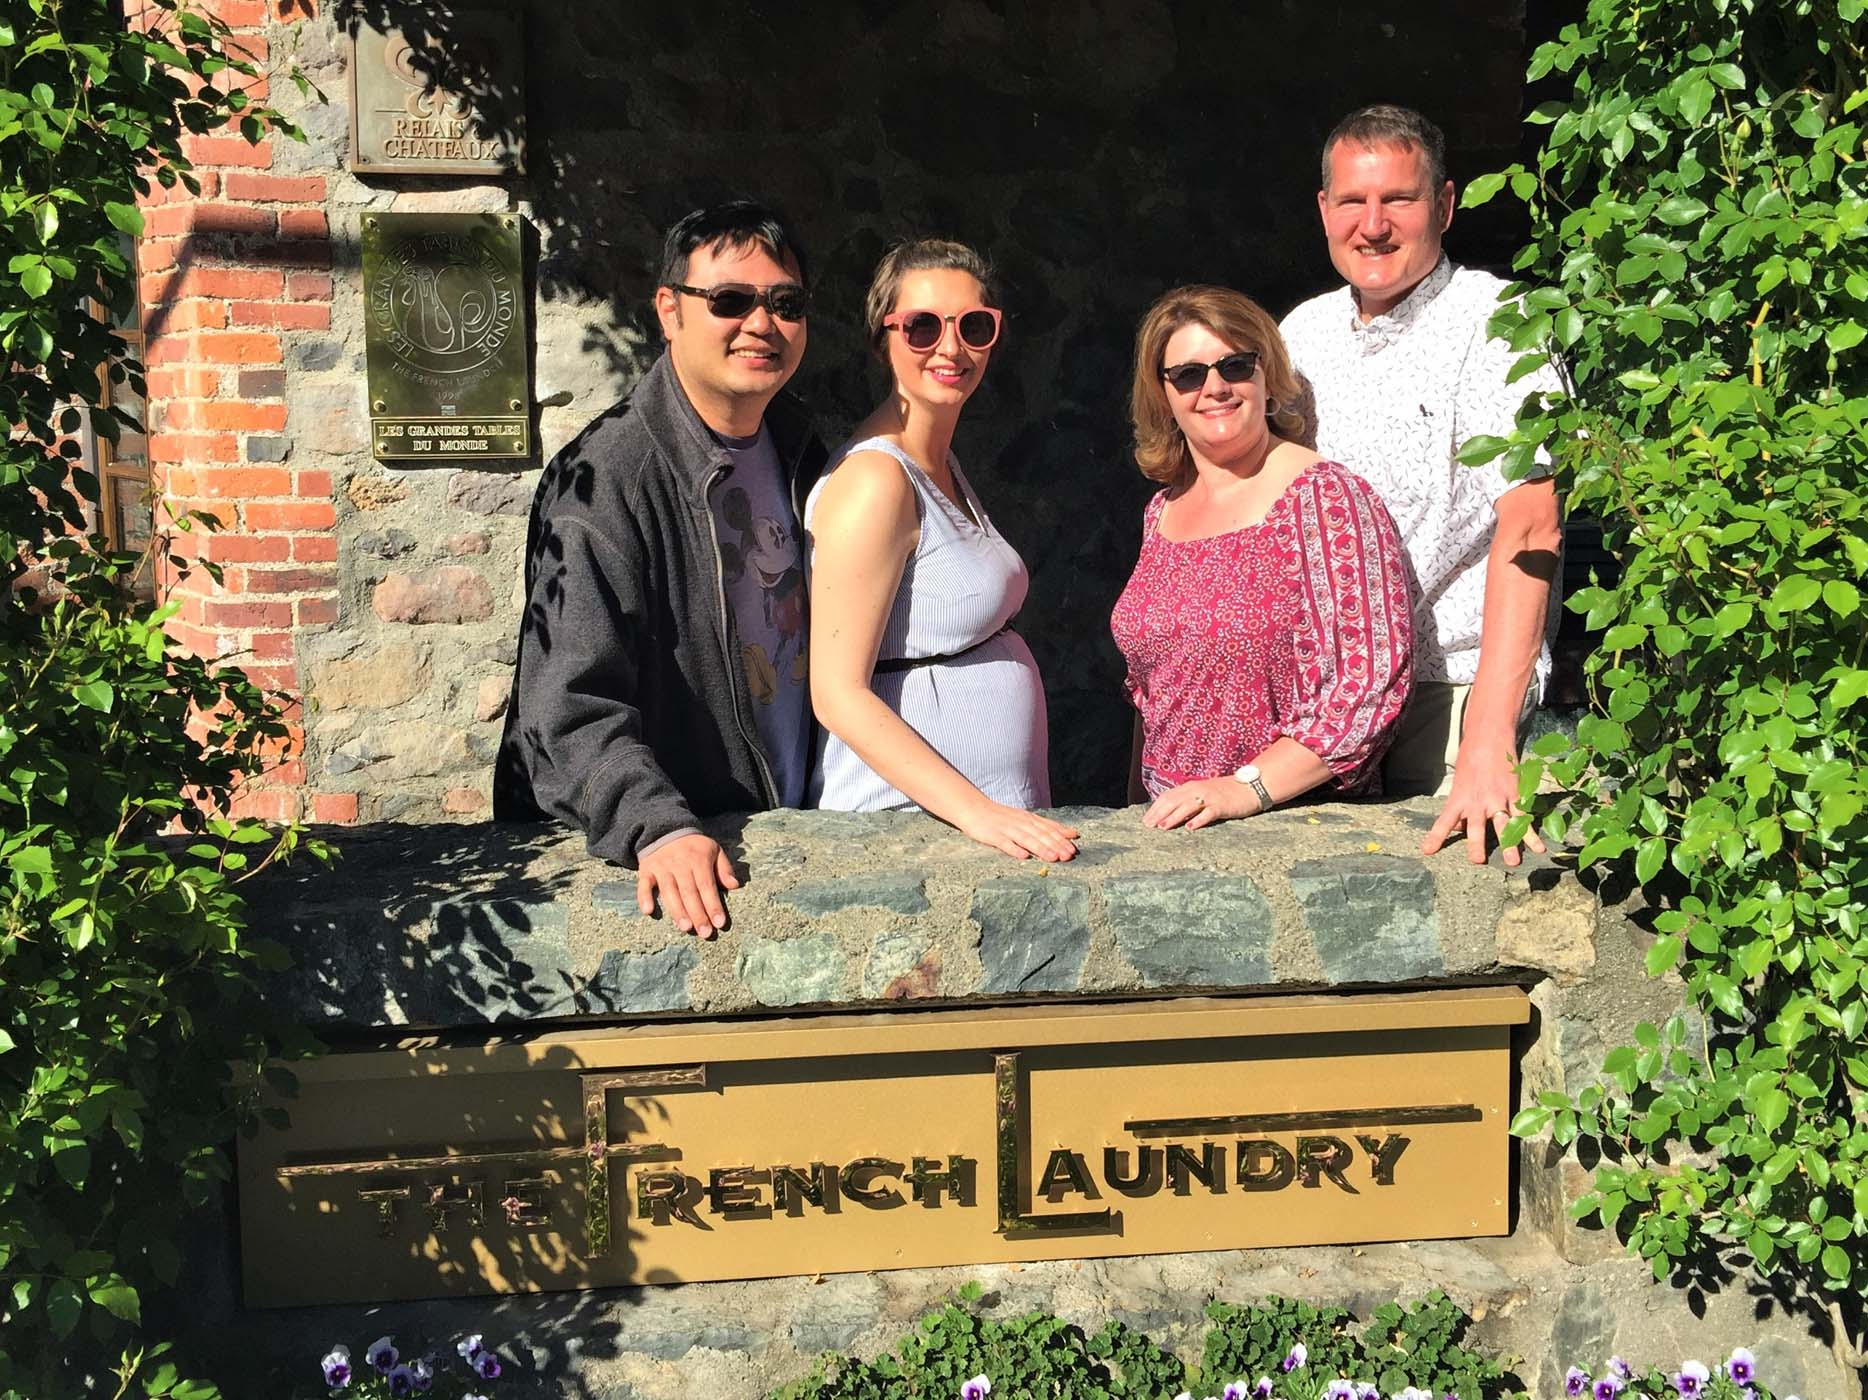 French Laundry visit